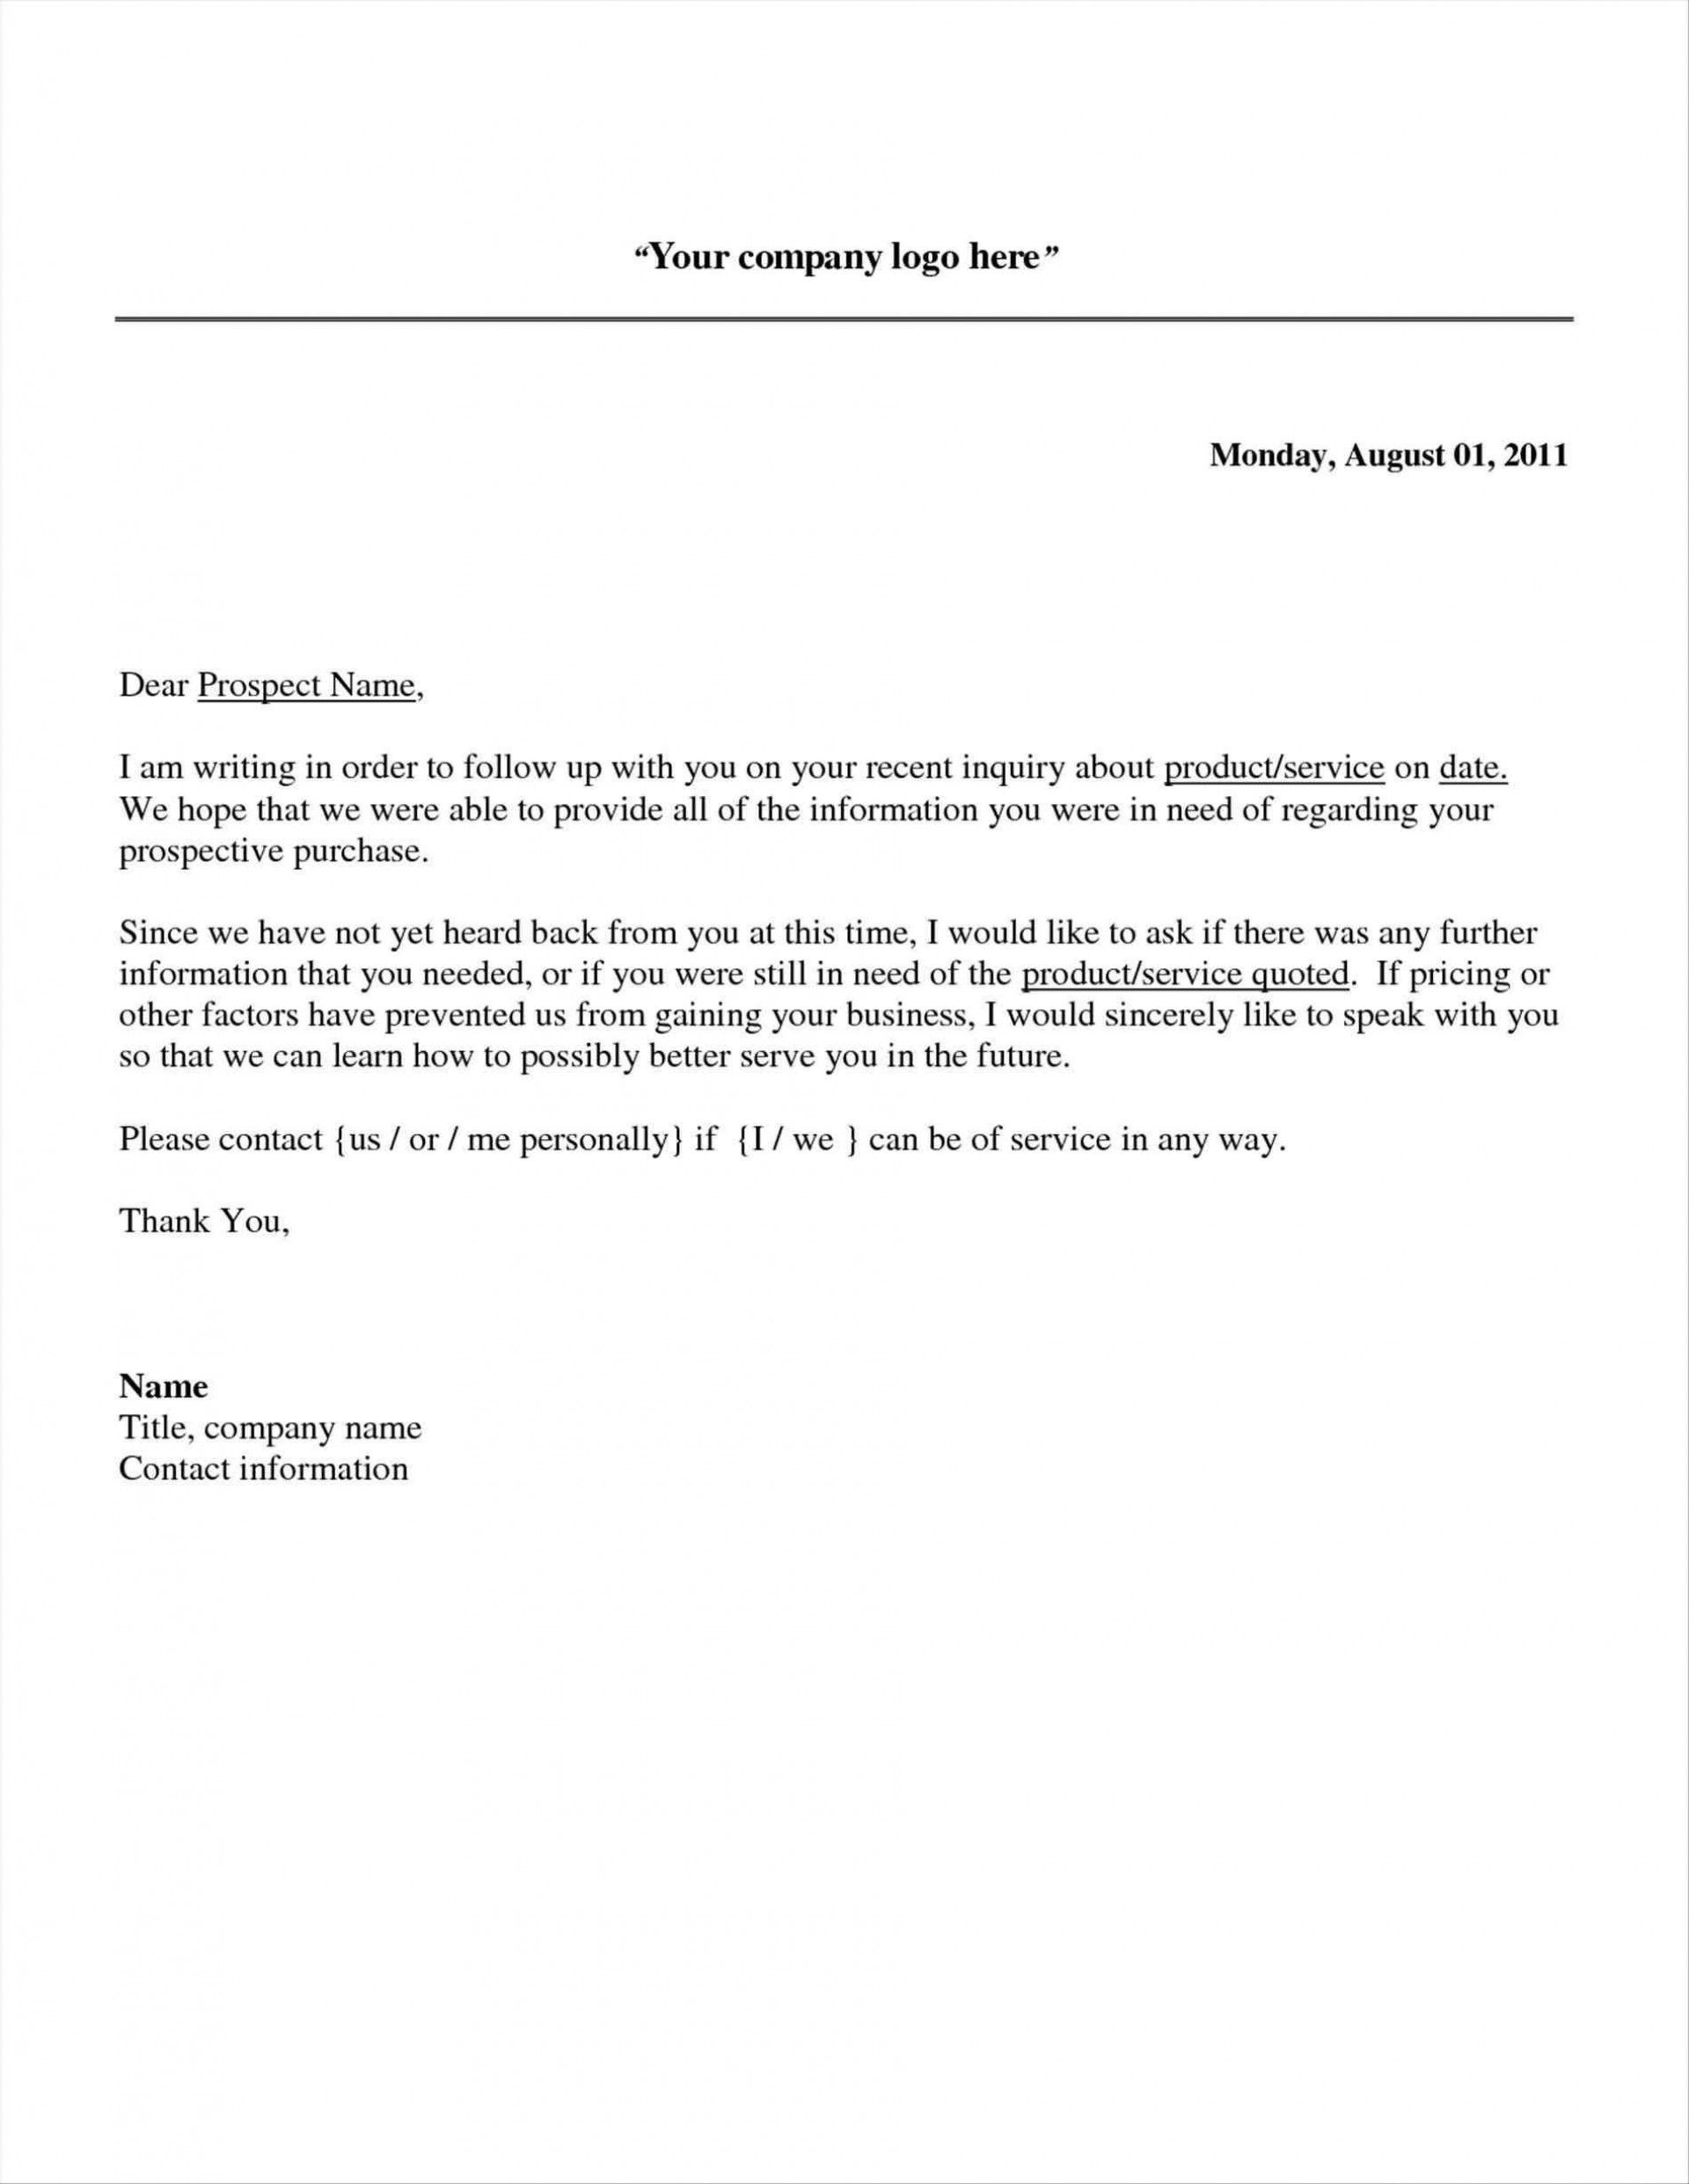 000 Fantastic Job Application Email Template Sample  Formal For Example Opportunitie Subject1920